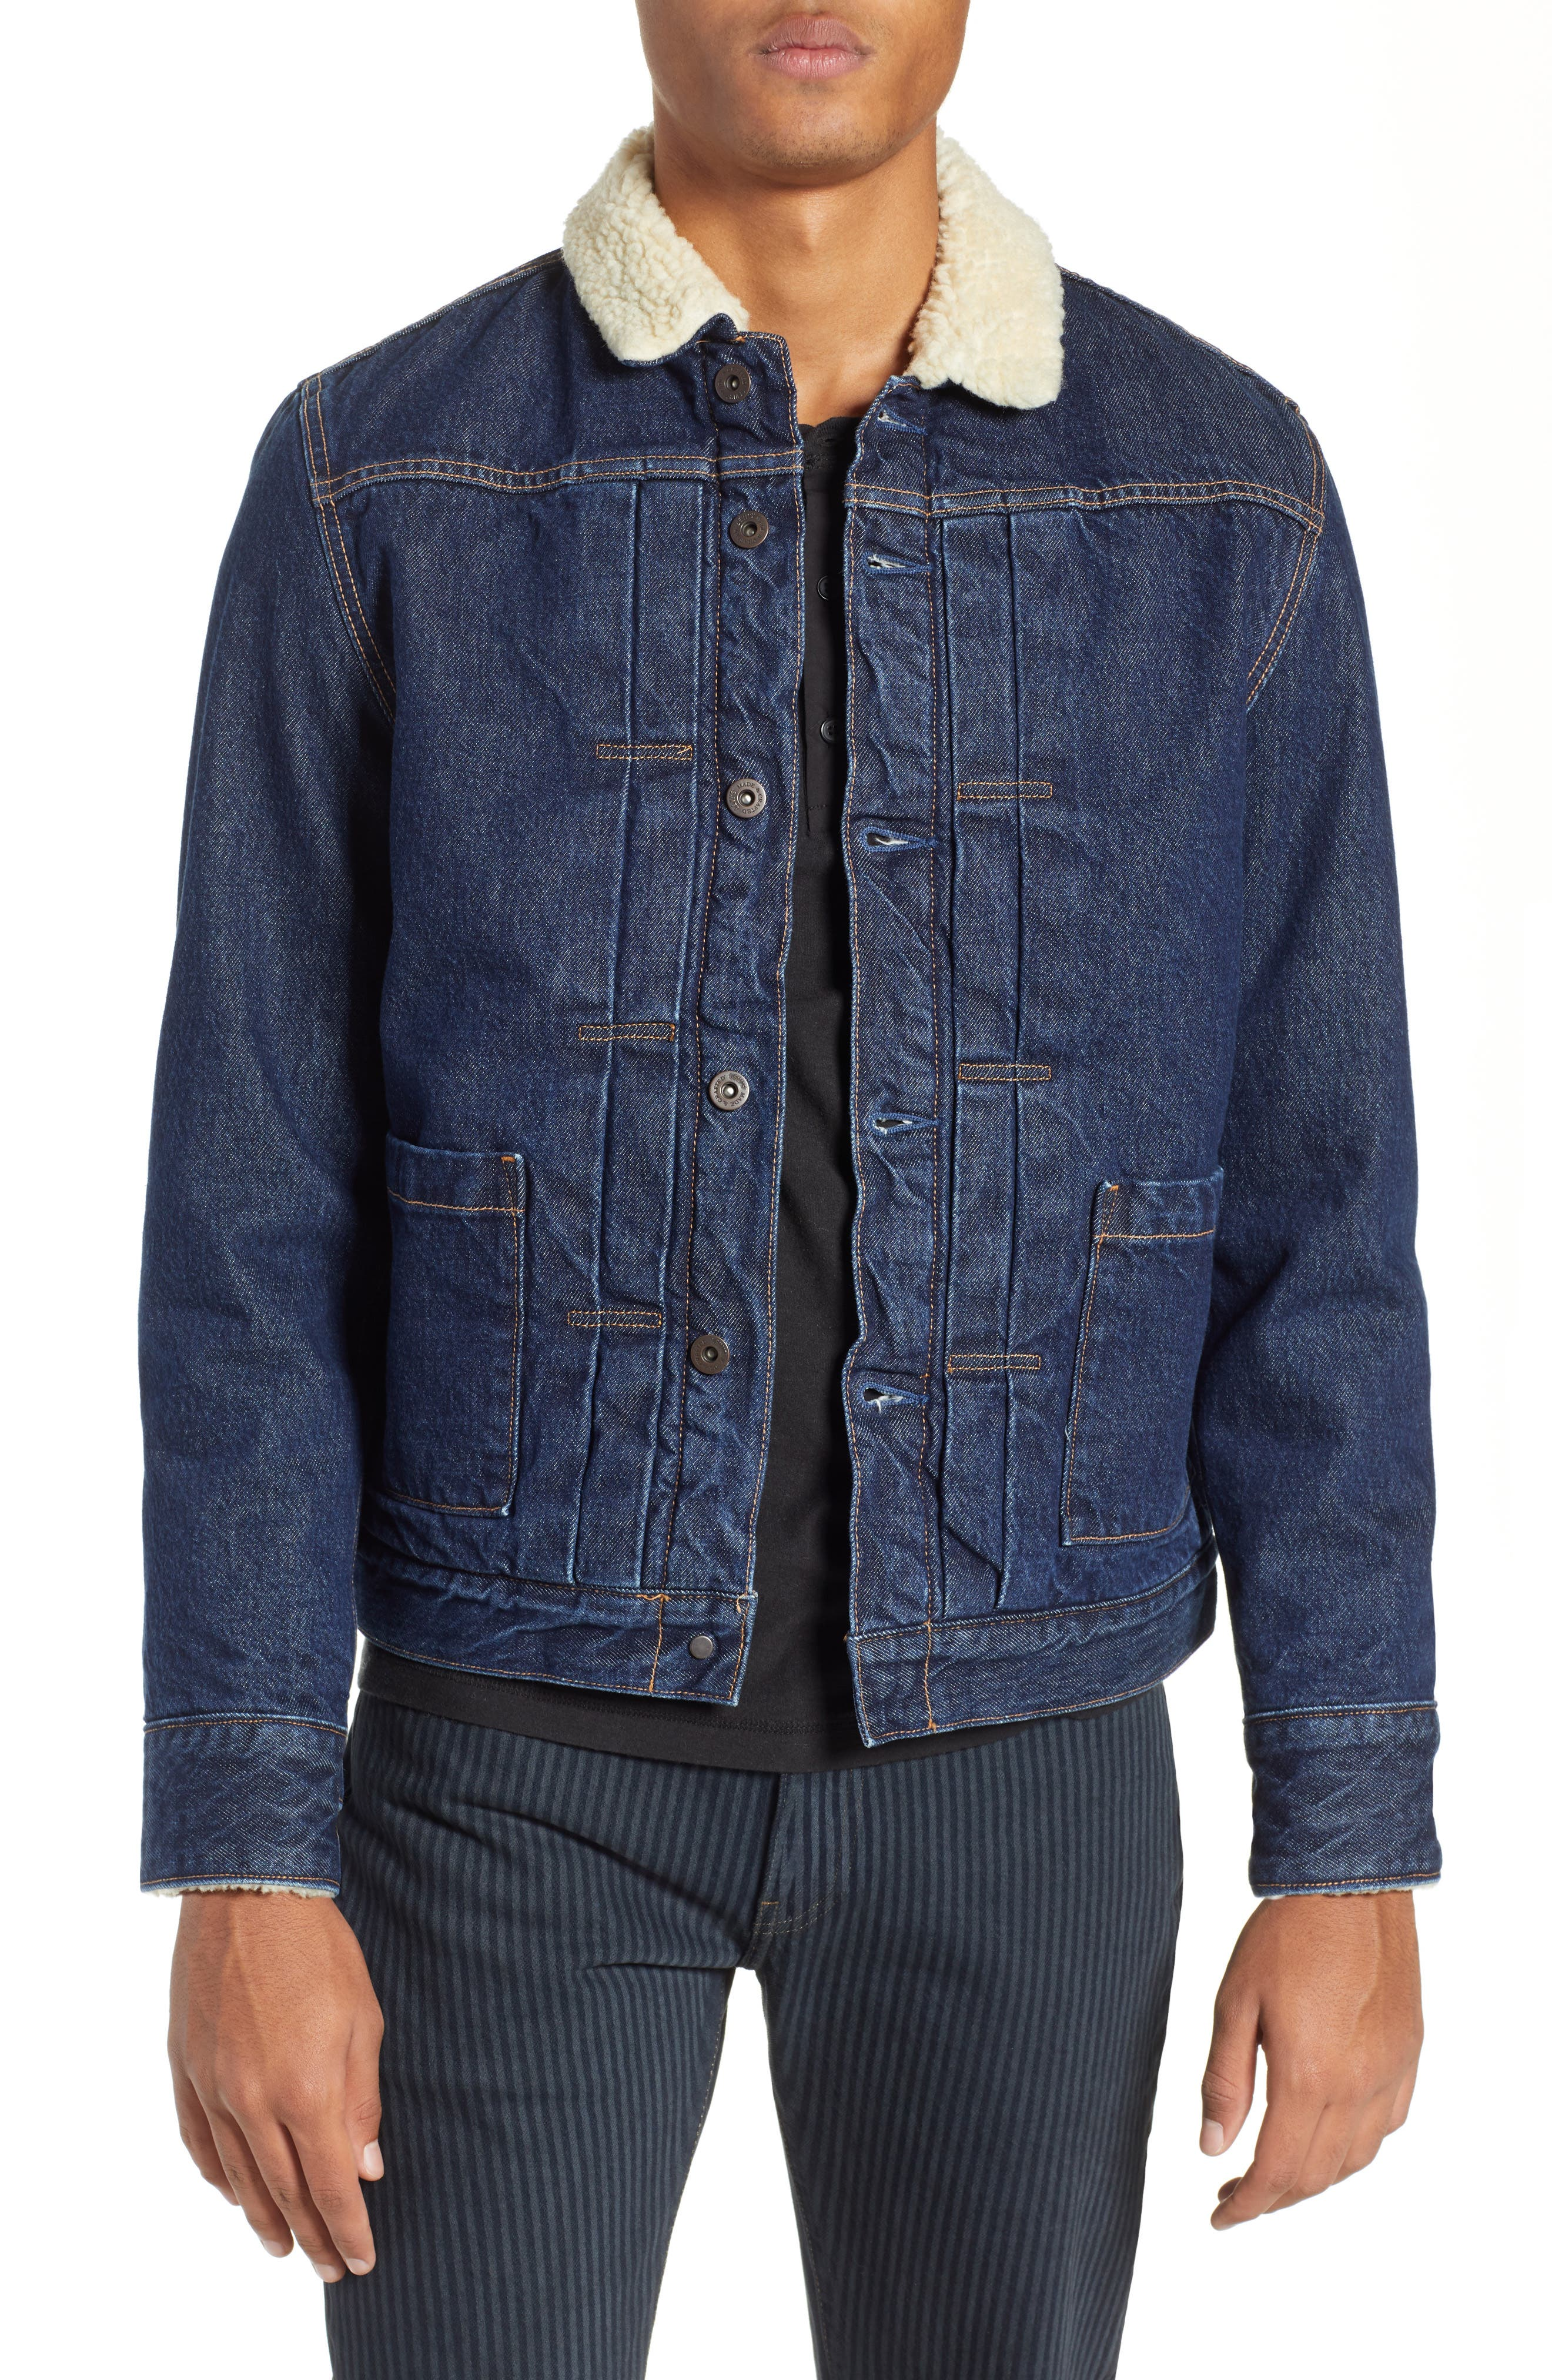 Levi's Made & Crafted<sup>™</sup> Faux Shearling Lined Denim Jacket,                         Main,                         color, CANYON